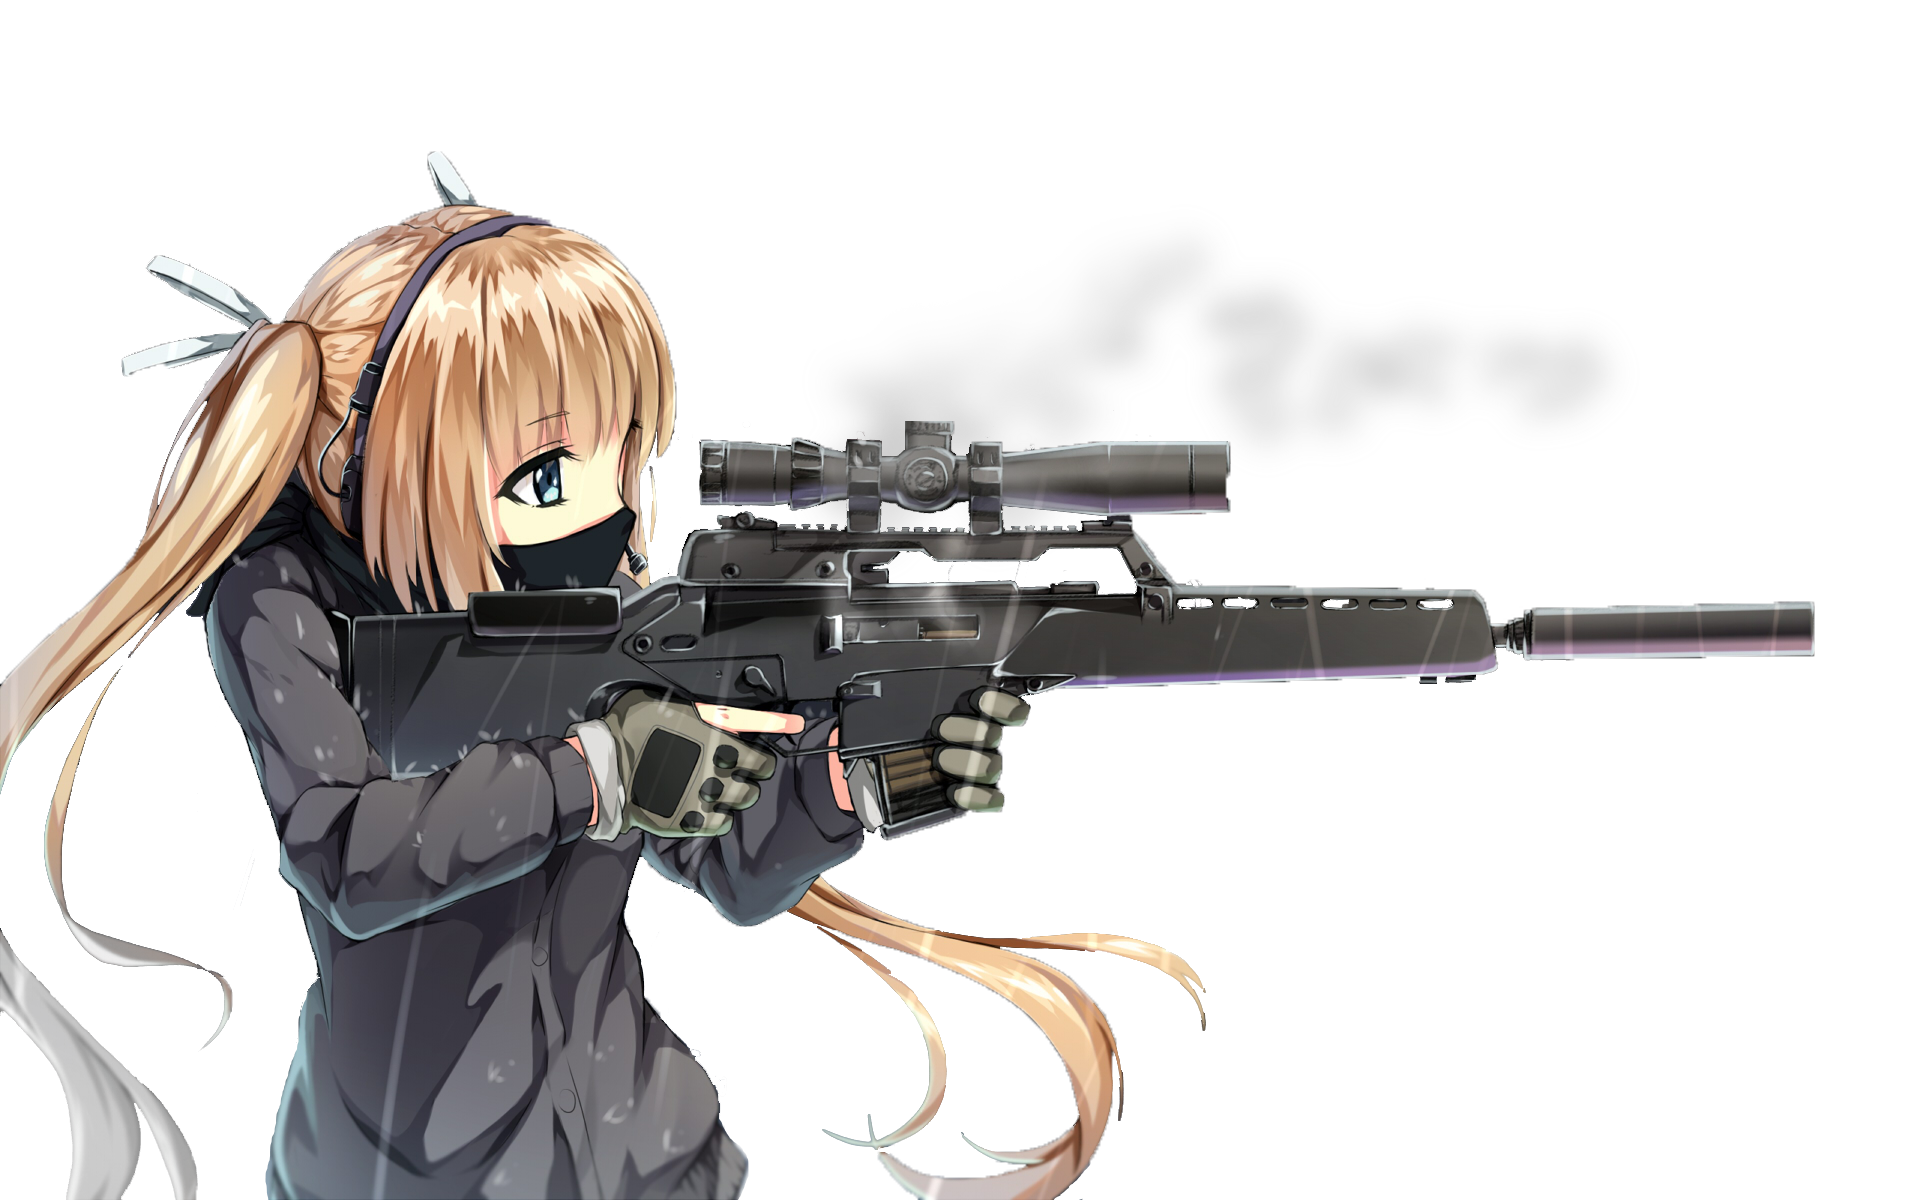 x assassinwarrior long. Anime girl with gun png png royalty free download